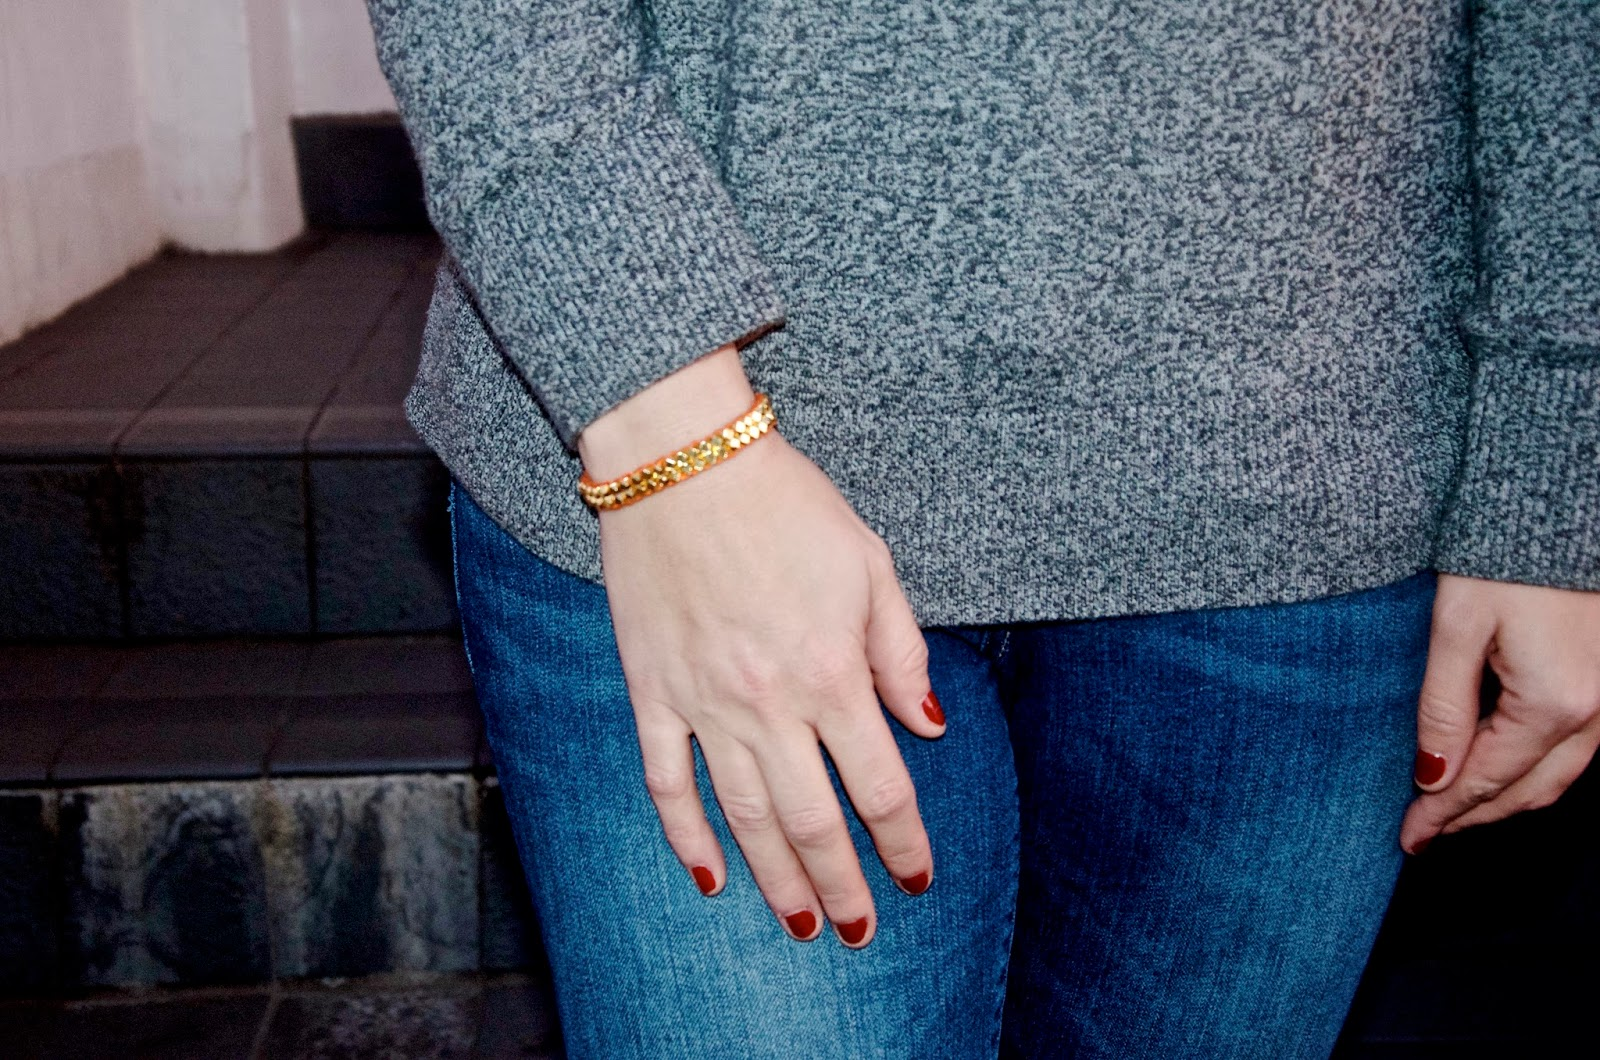 Red nail polish and orange bracelet with gold beads